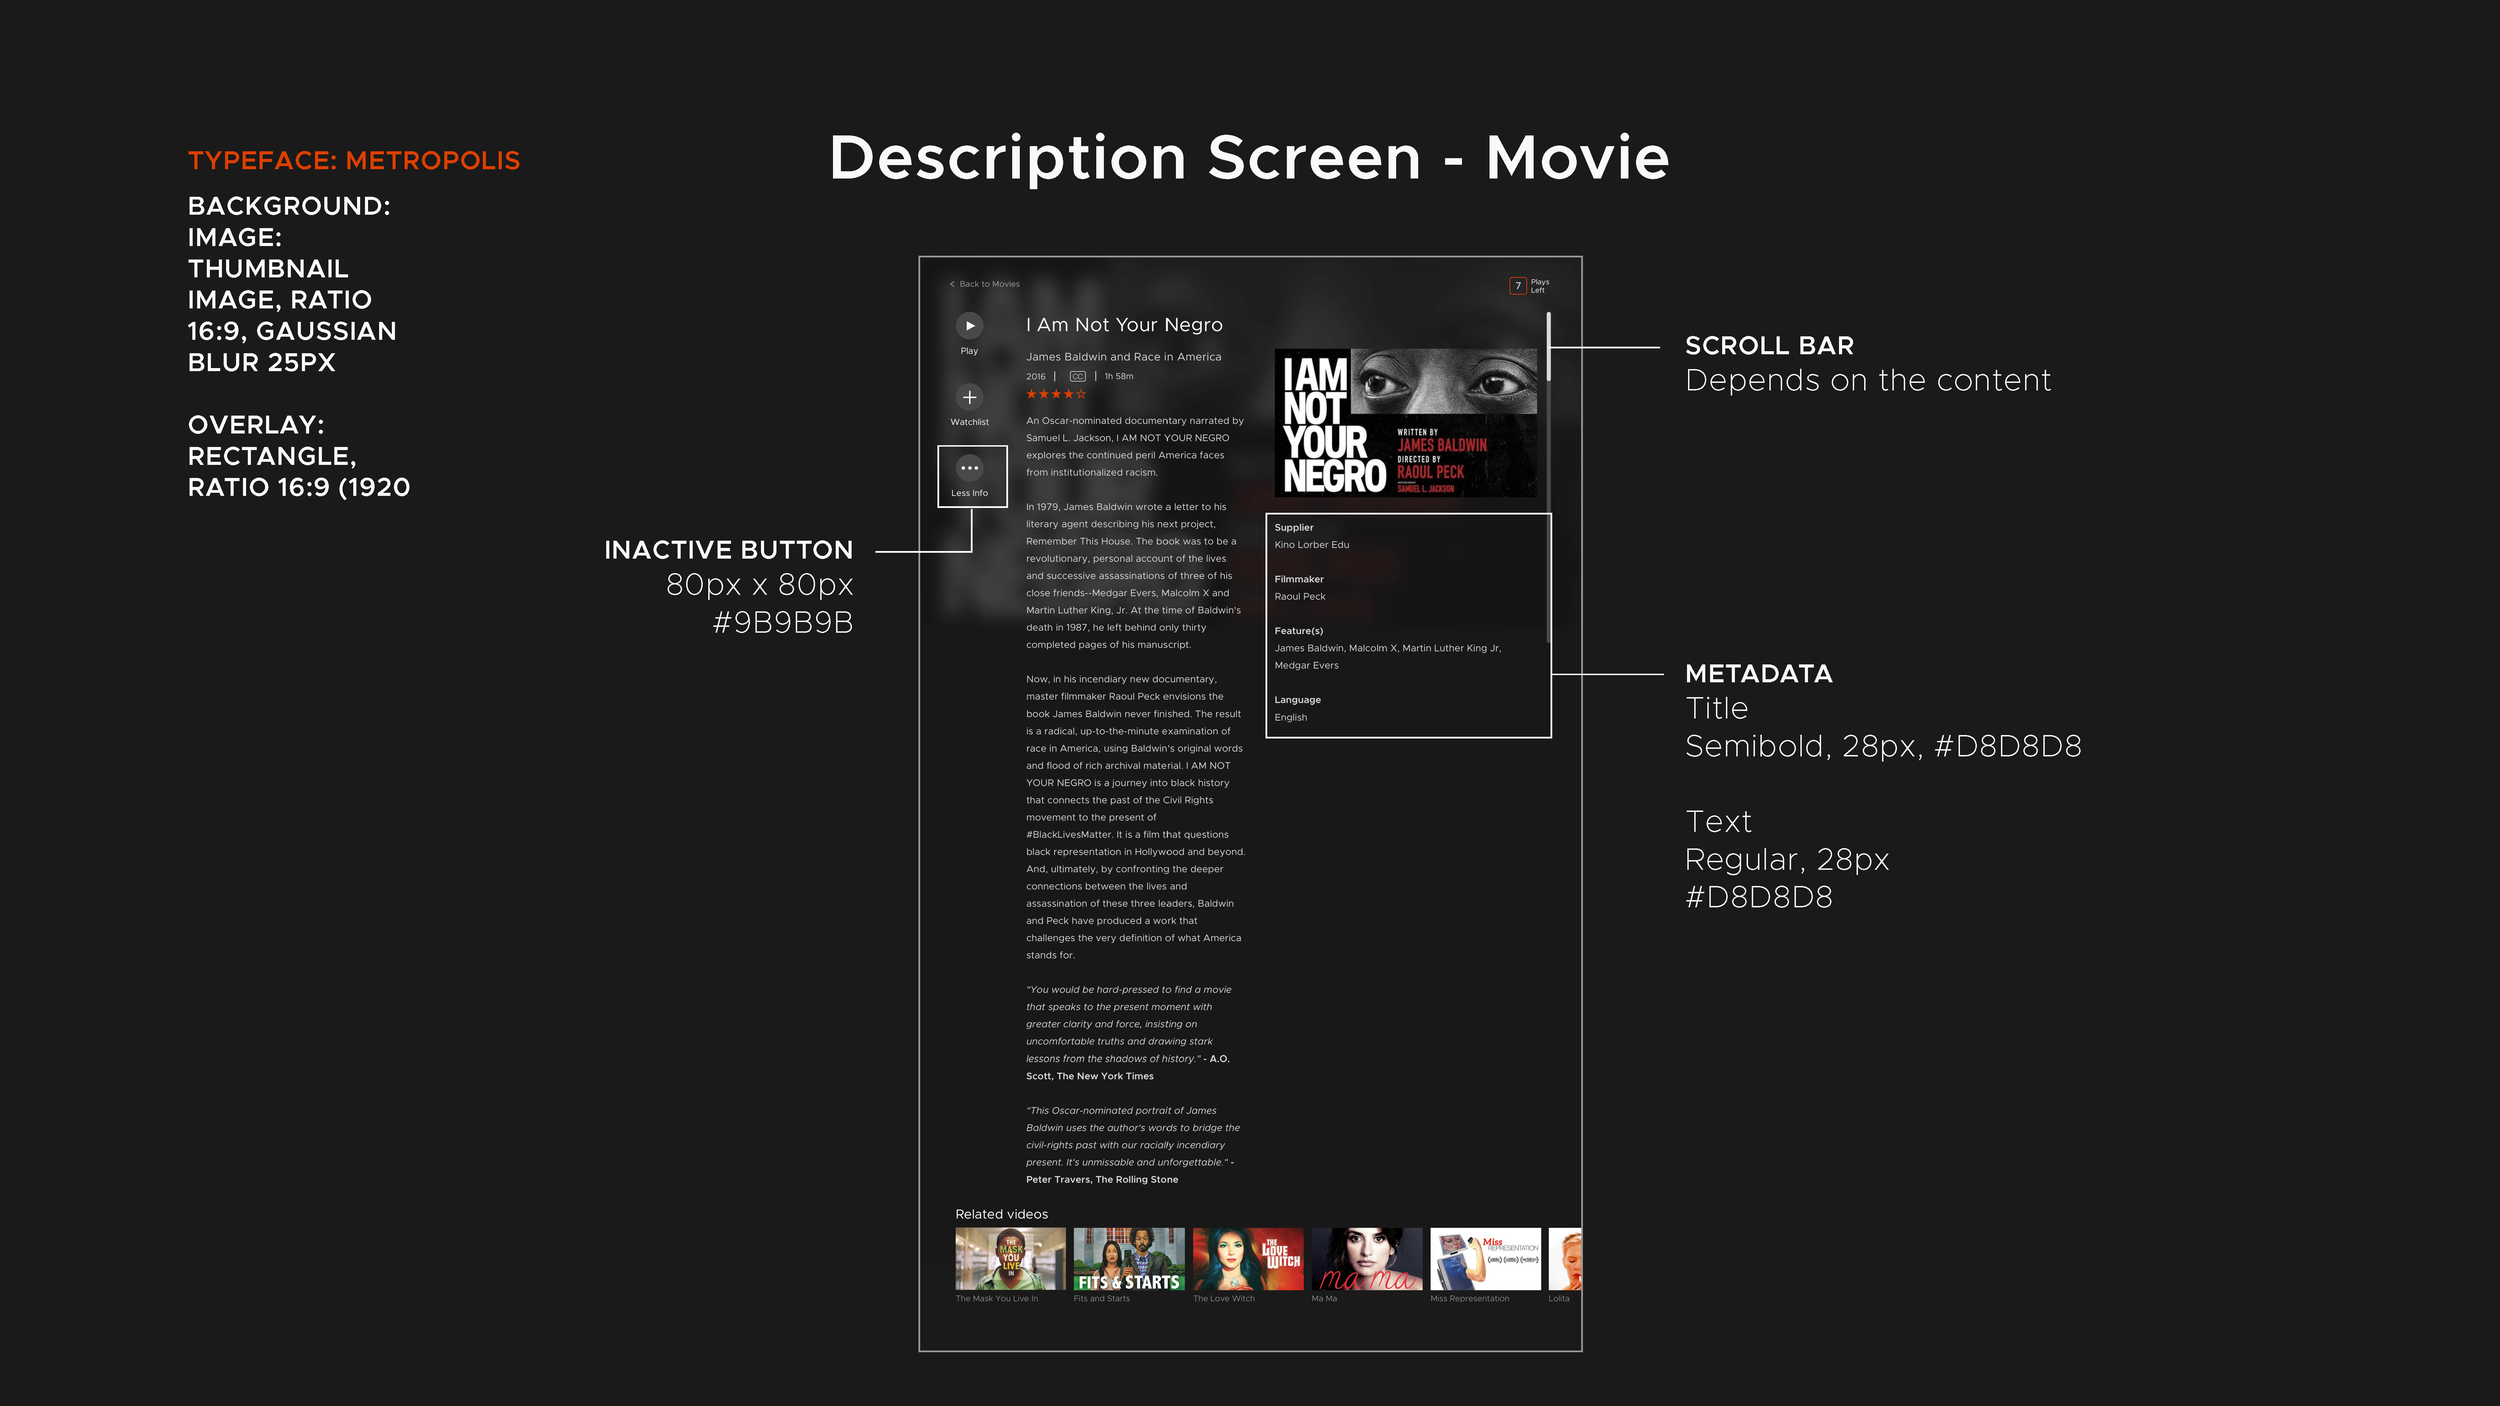 Description Screen - Movie Styleguide_Page_2.png